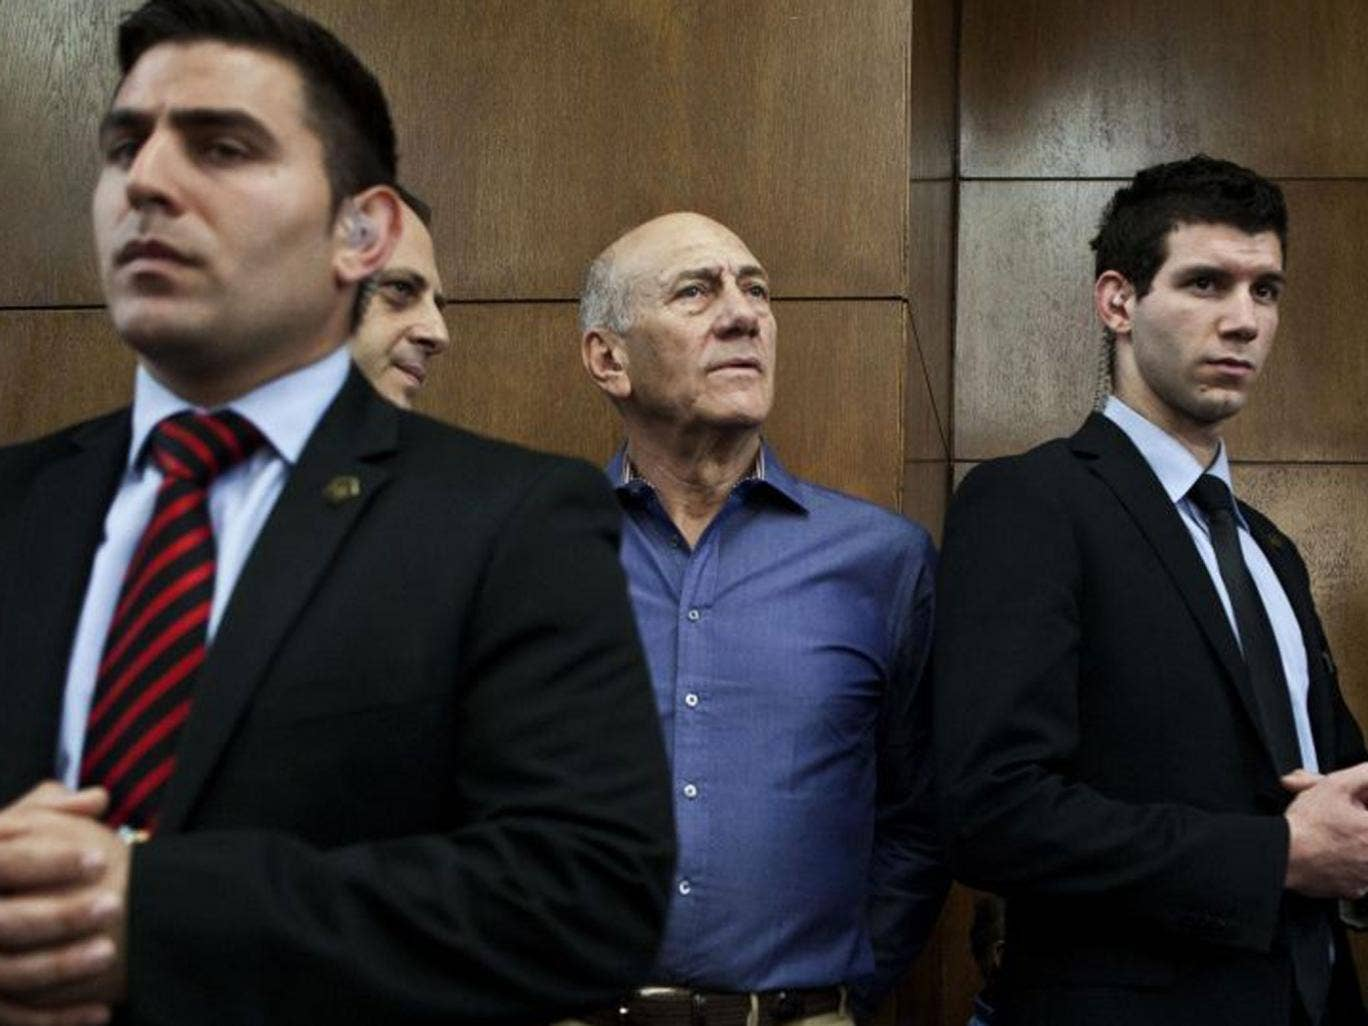 Former Israeli Prime Minister Ehud Olmert (2nd R) waits to hear his verdict at the Tel Aviv District Court in this March 31, 2014 file photo. Ex-Prime Minister Olmert was sentenced to six years' imprisonment on May 13, 2014 for taking bribes, in a corrupt